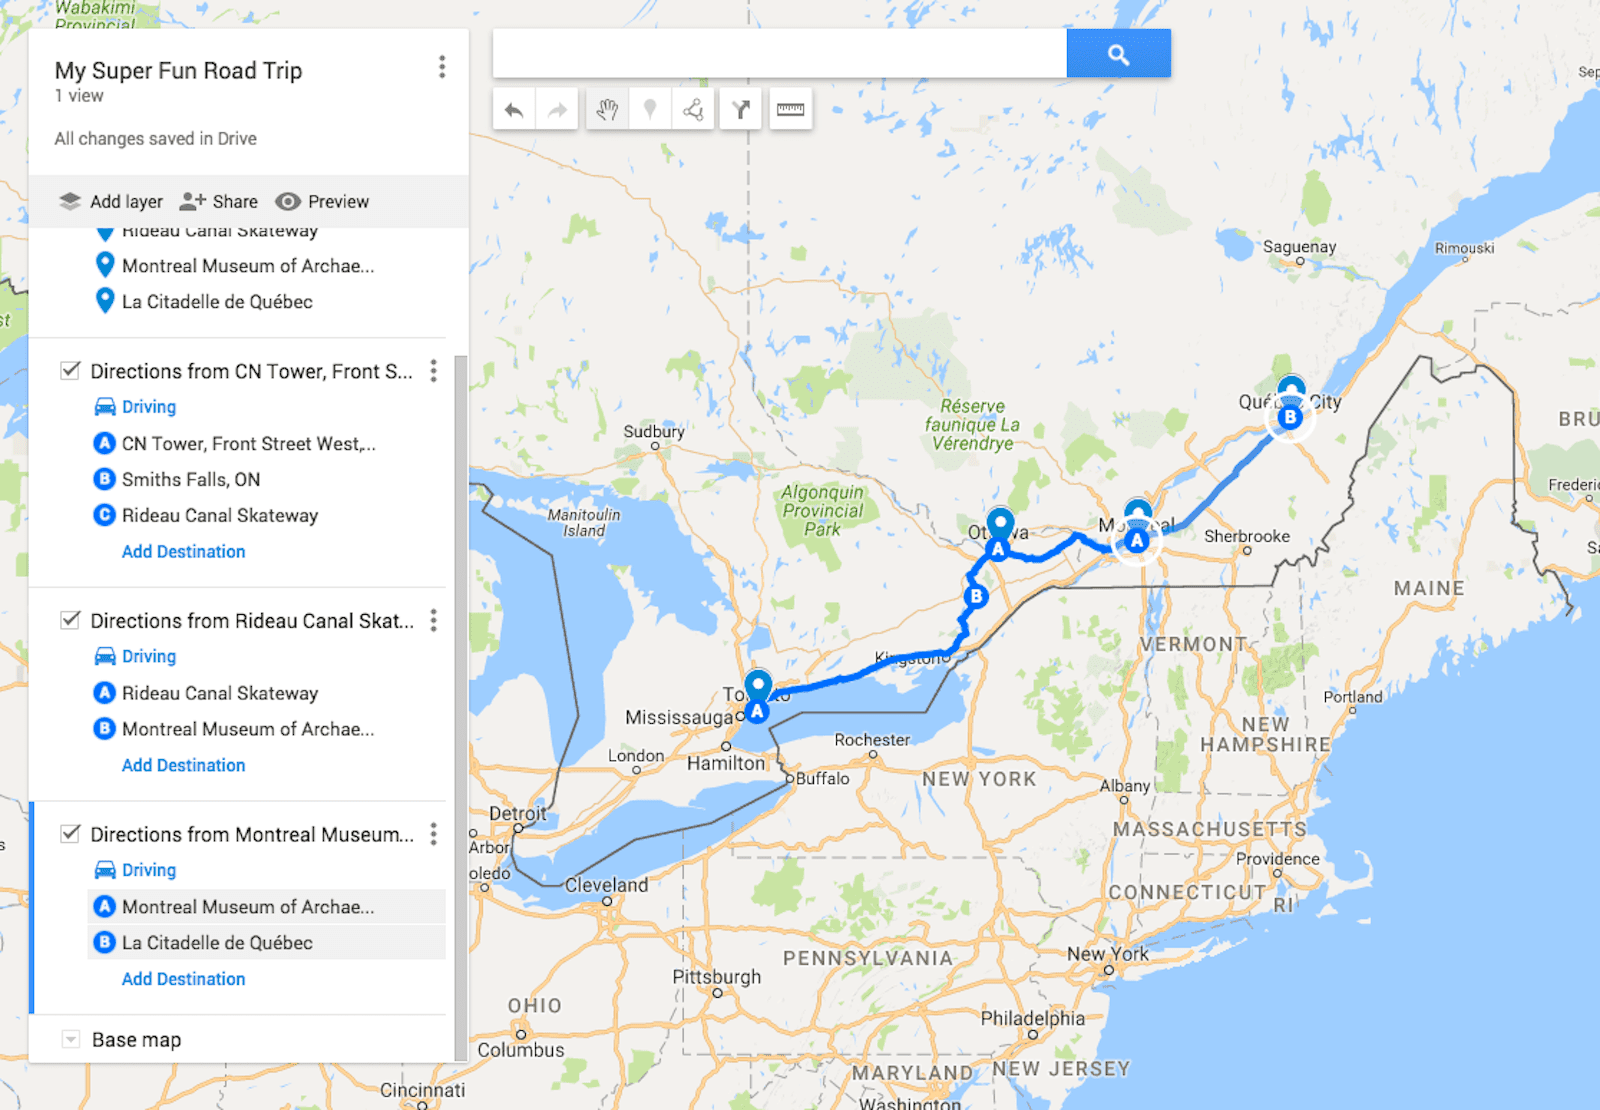 Send a Custom Route on Google Maps to Your Phone Google Map Quebec on world map quebec, major lakes in quebec, mapquest quebec, detailed map of quebec, google earth quebec,